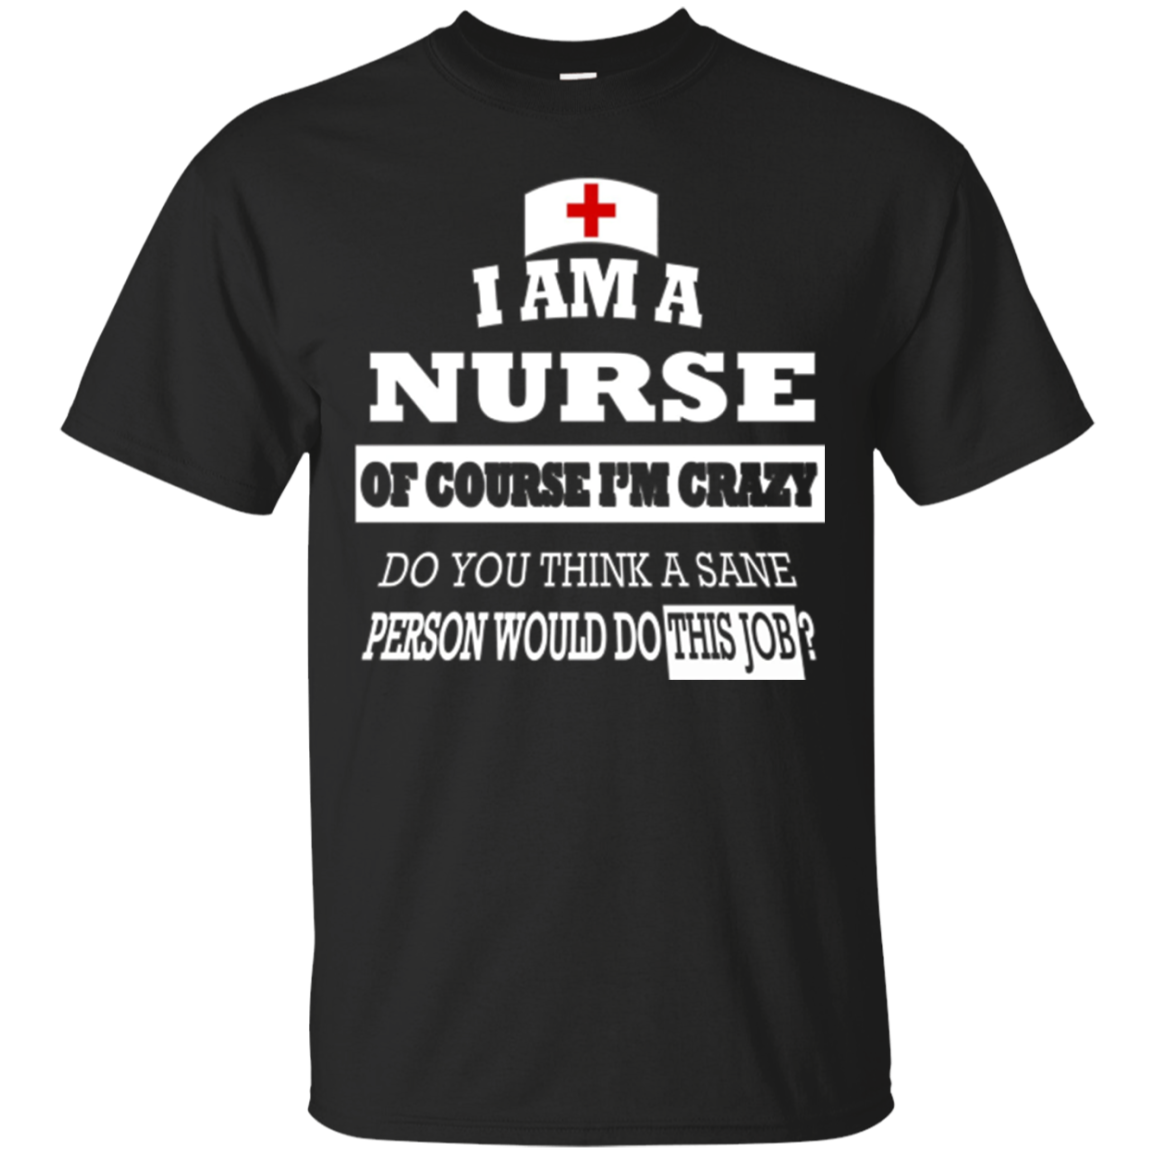 I Am A Nurse Of Course I'm Crazy - Funny T Shirt Gift